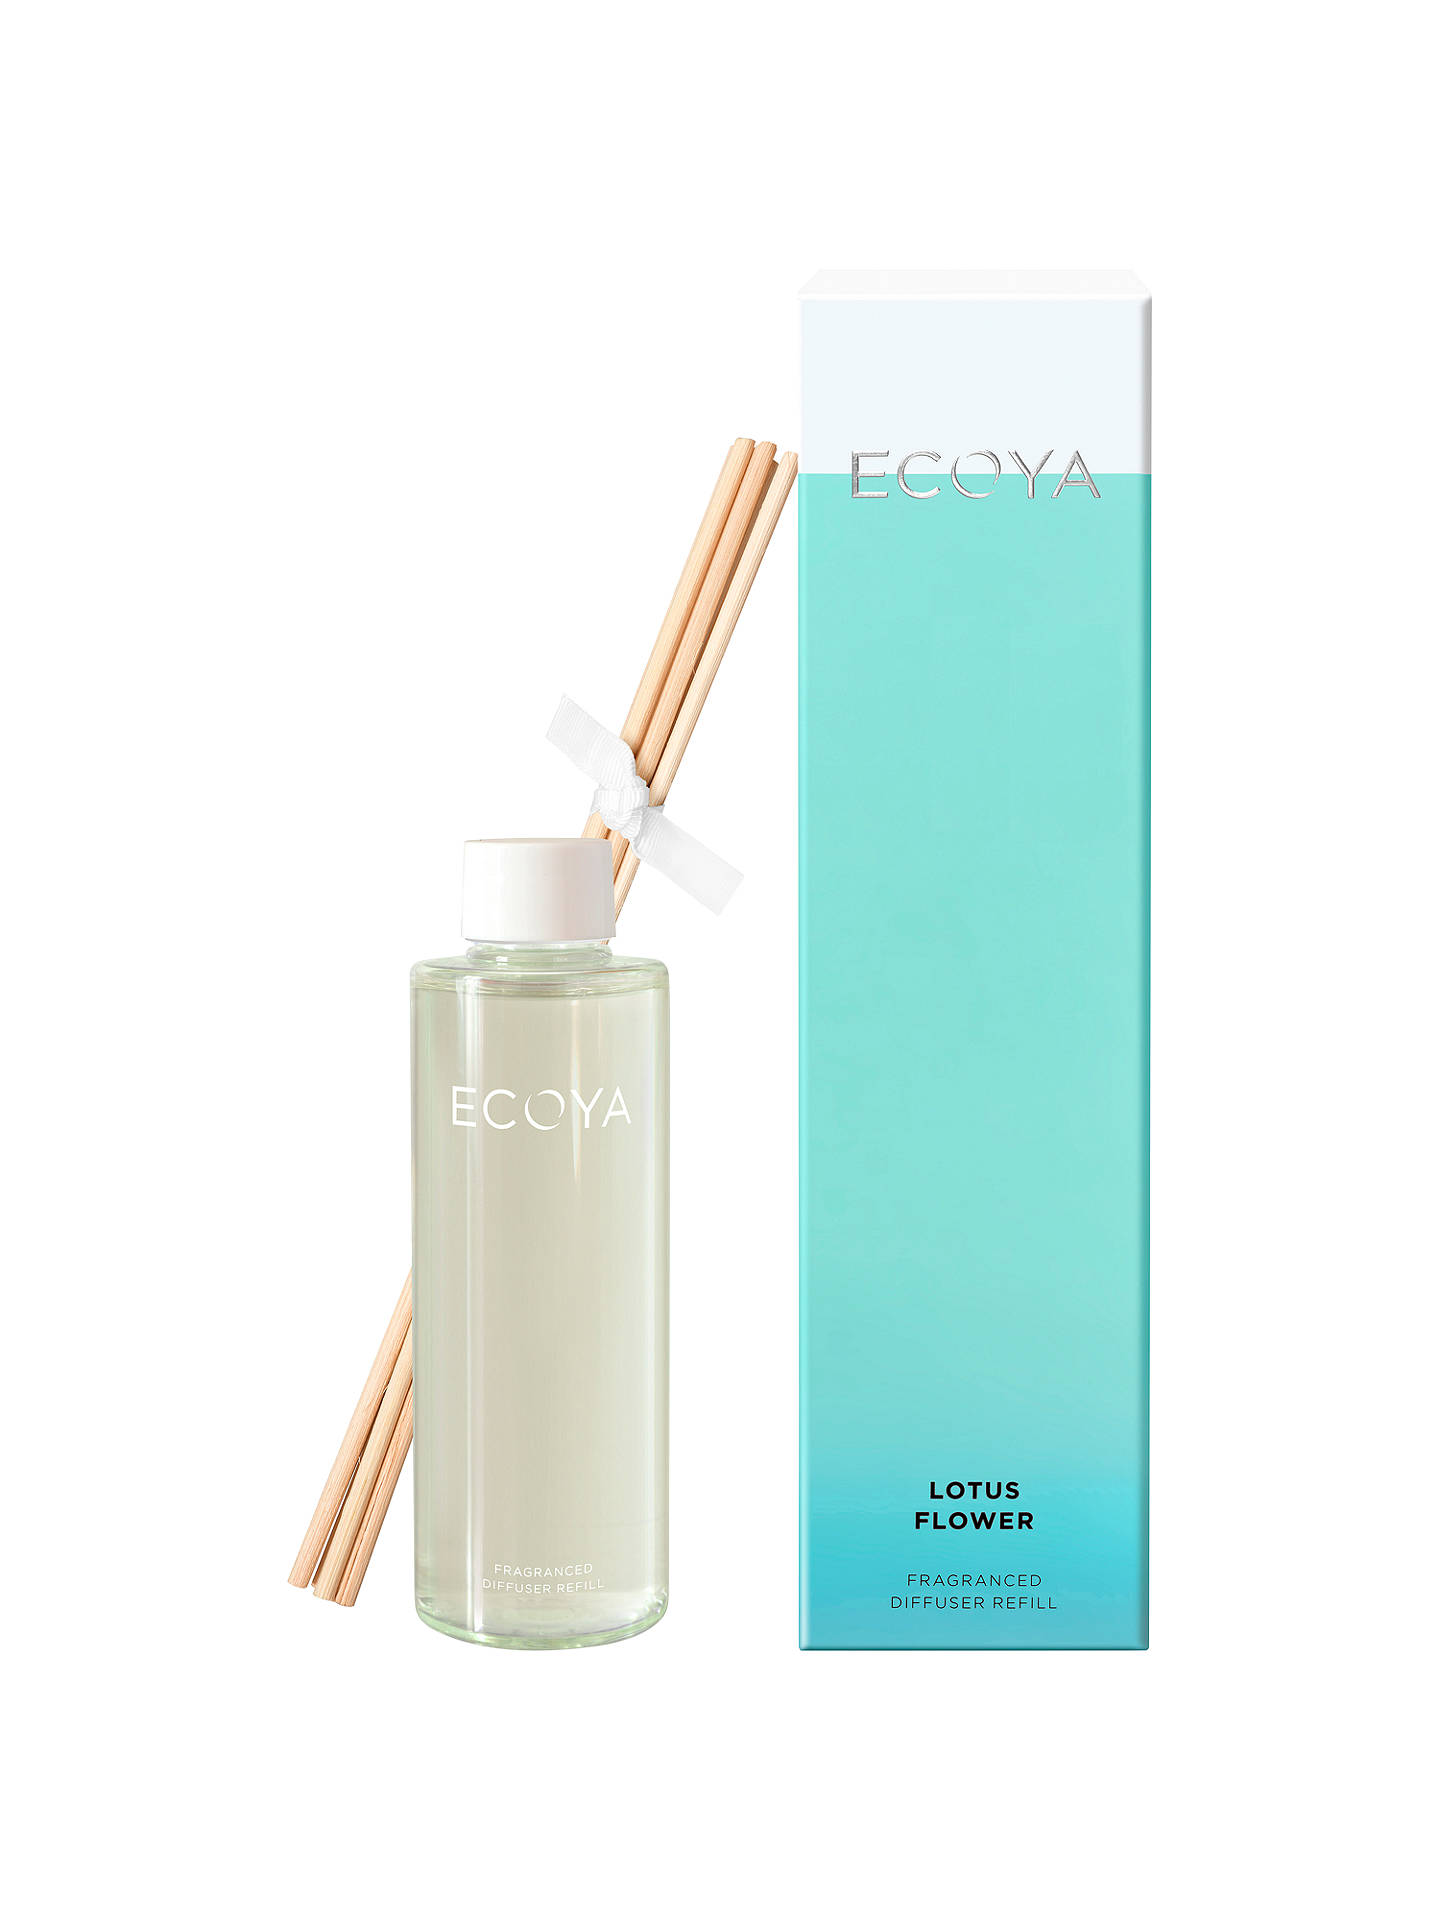 Ecoya Lotus Flower Diffuser Refill 200ml At John Lewis Partners